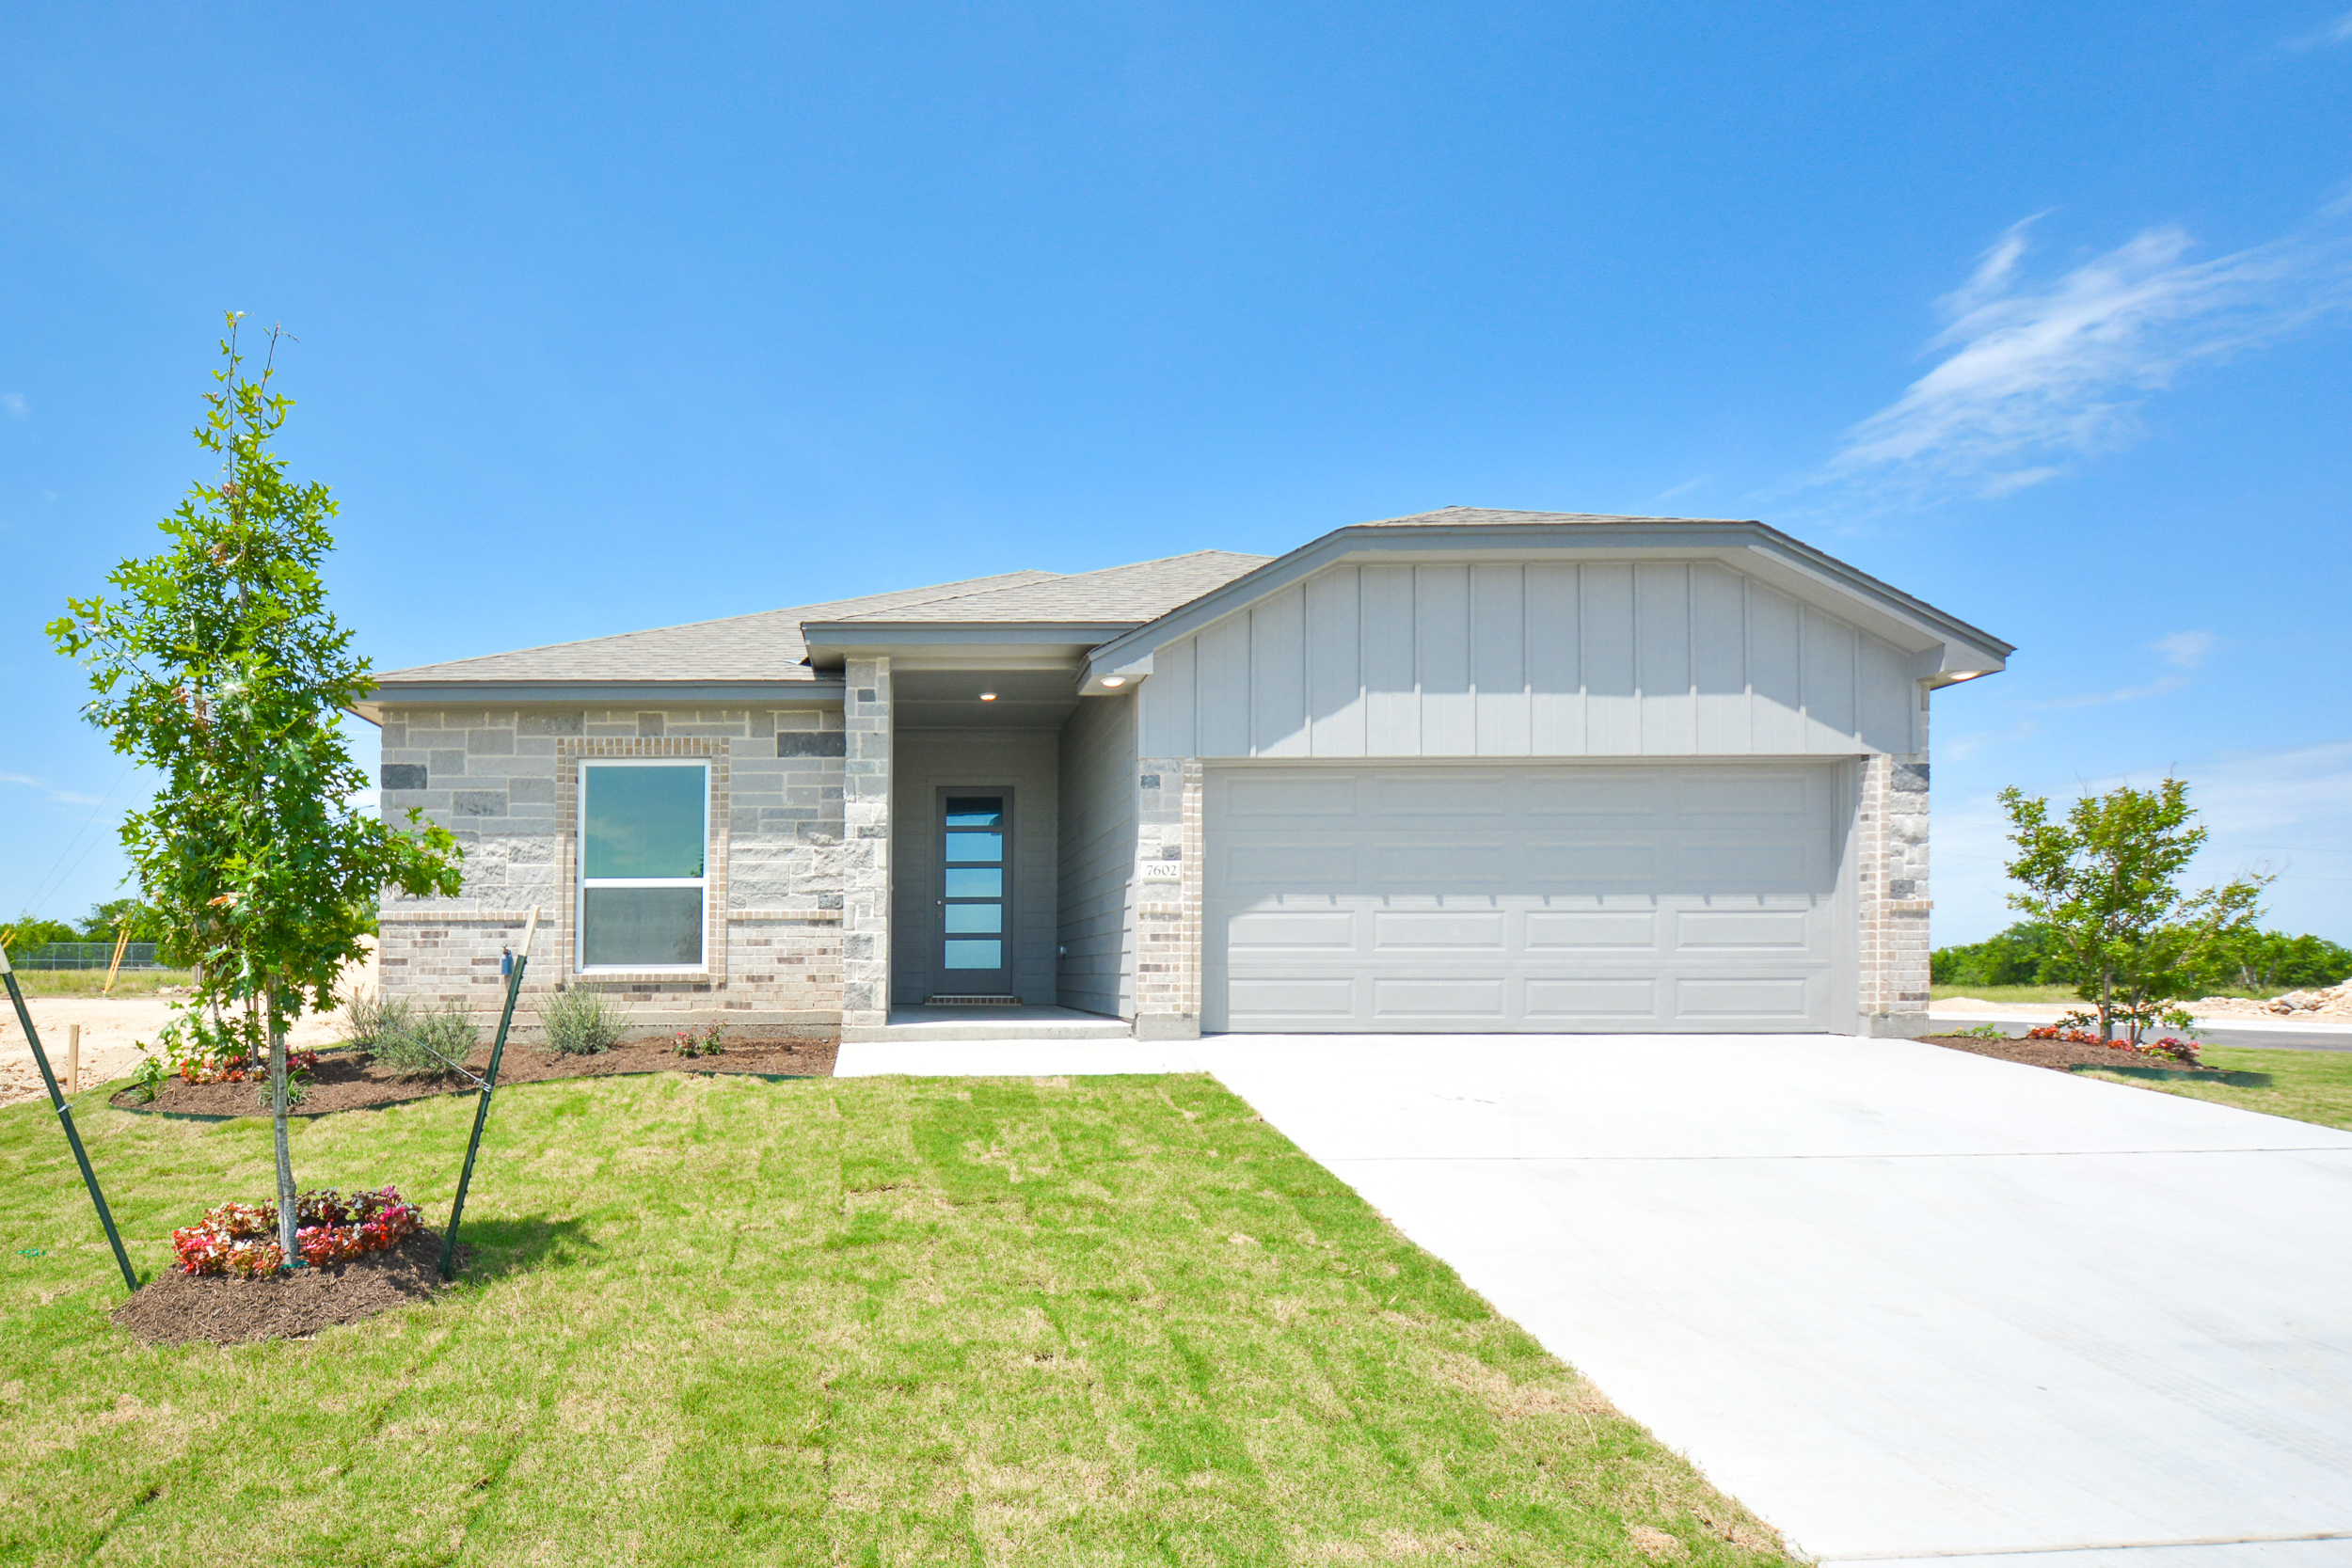 DB Fuller building homes in Central Texas - this is a model home of Purvis